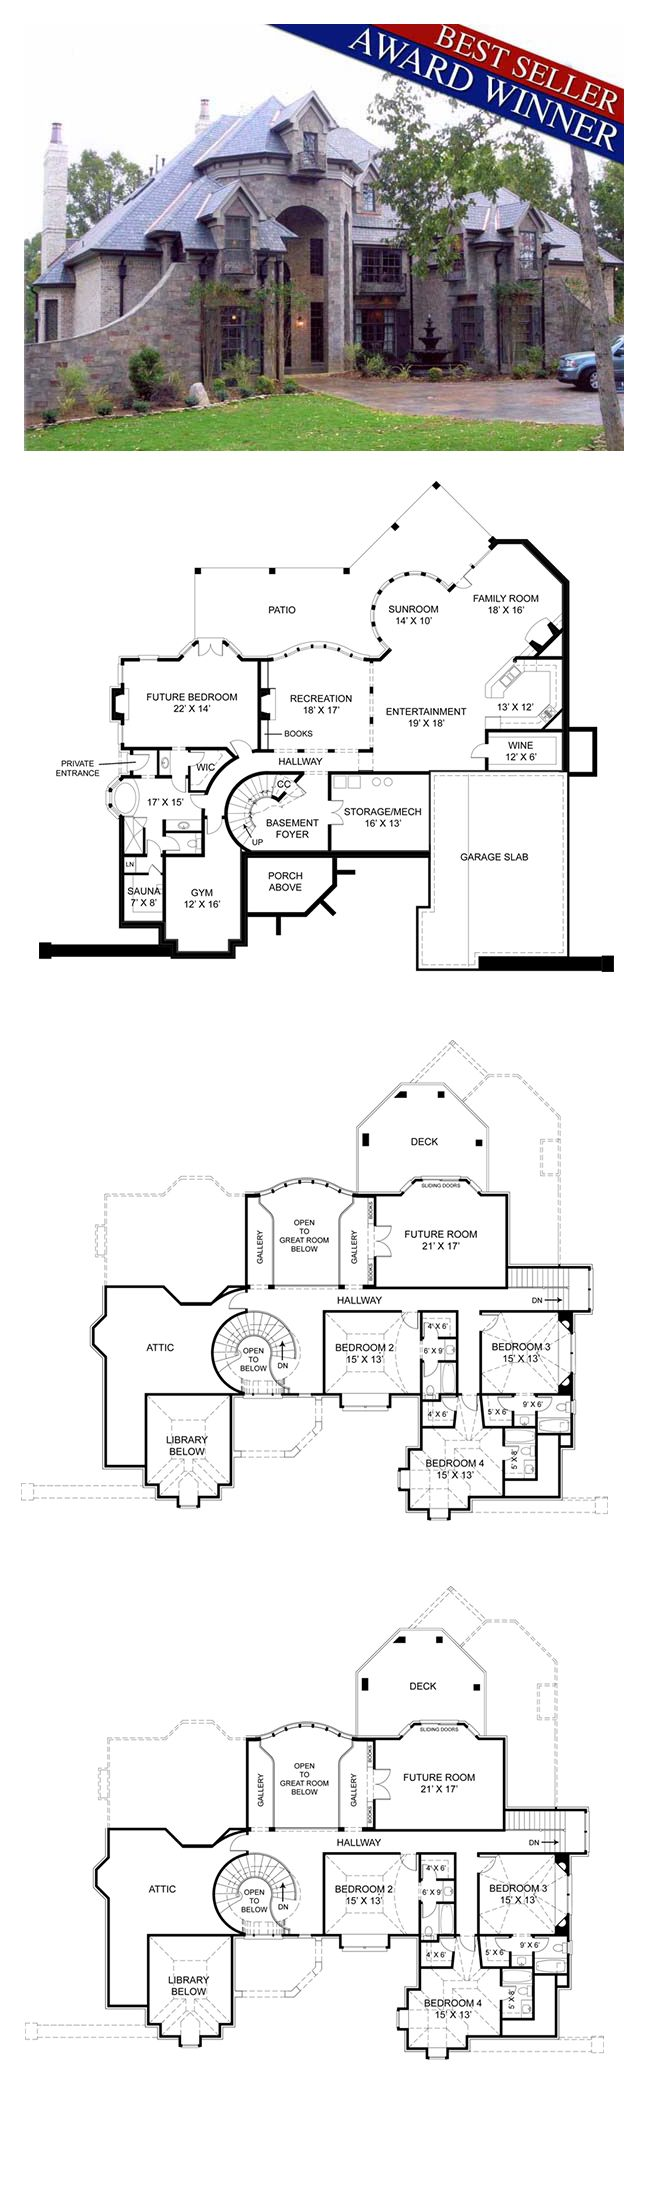 European greek revival victorian house plan 72201 luxury house plans wine cellar and modern Luxury victorian house plans